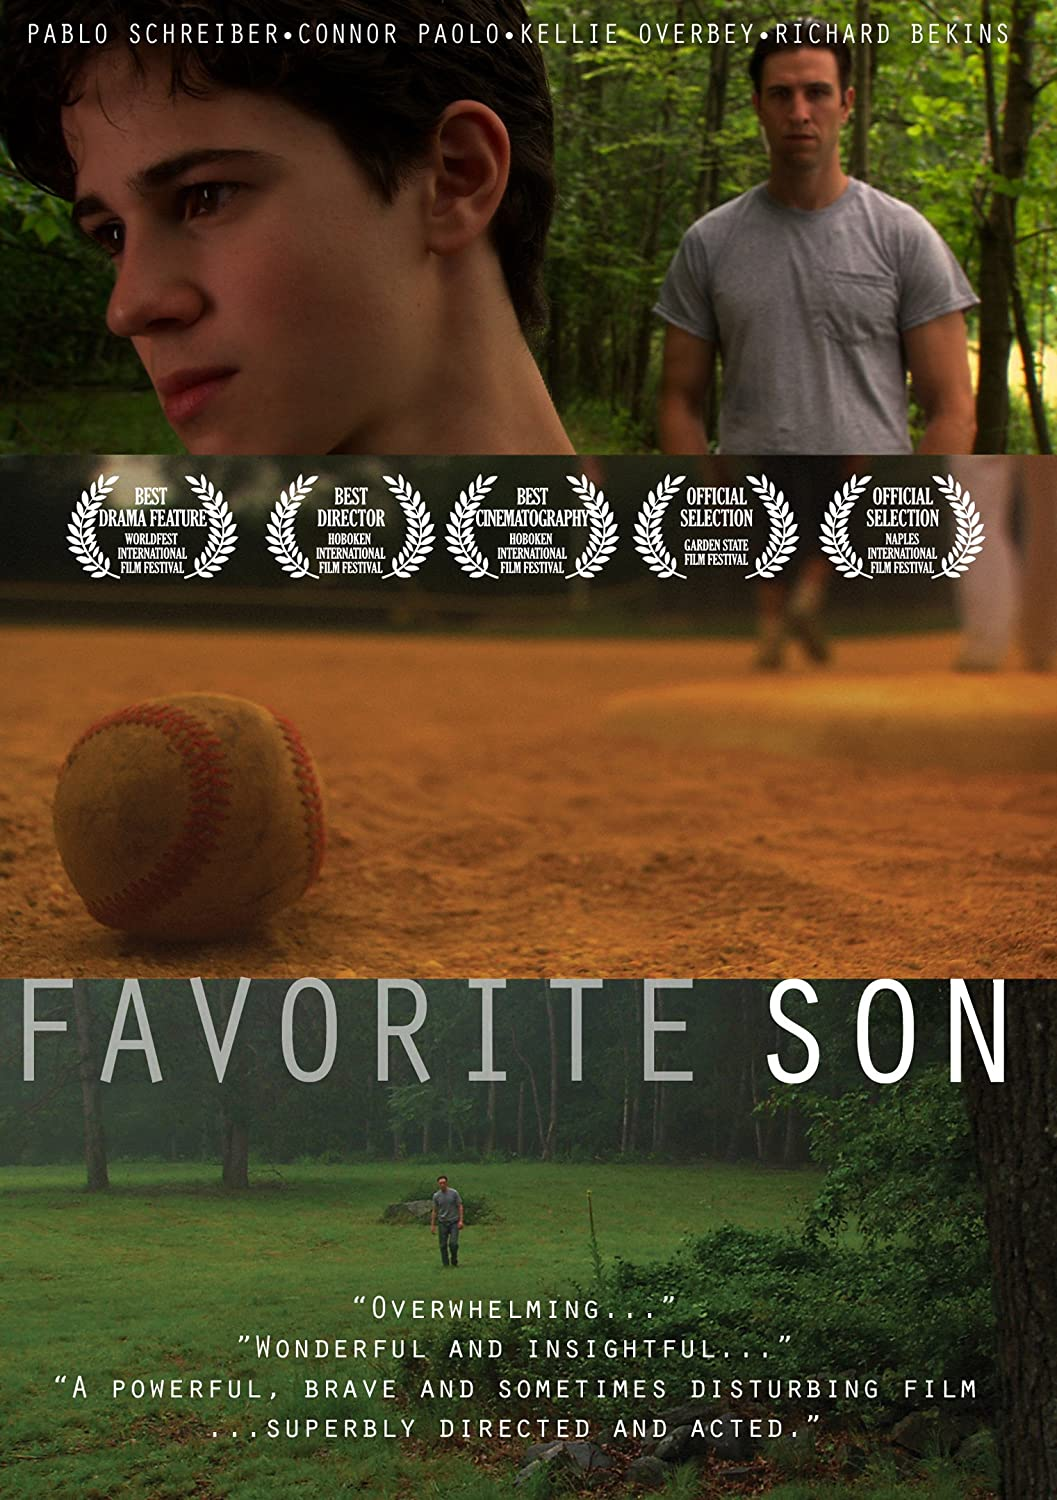 Amazon.com: Favorite Son: Pablo Schreiber, Connor Paolo, Kellie ...